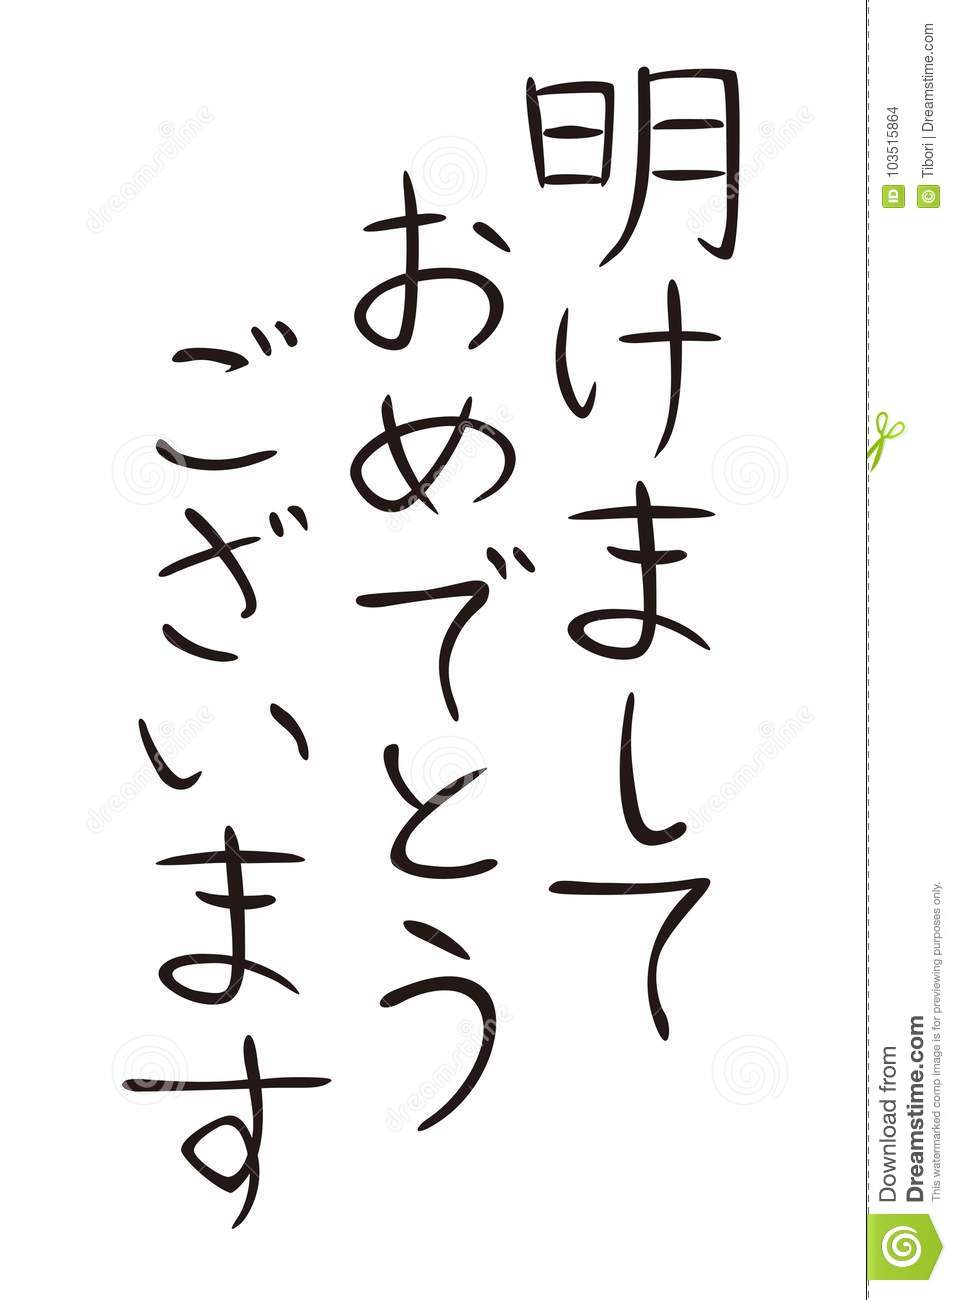 Happy New Year In Japanese Stock Illustration Illustration Of Japanese 103515864 Wish prosperity and happiness to all you know. https www dreamstime com happy new year japanese set phrase used s formal traditional illustration image103515864